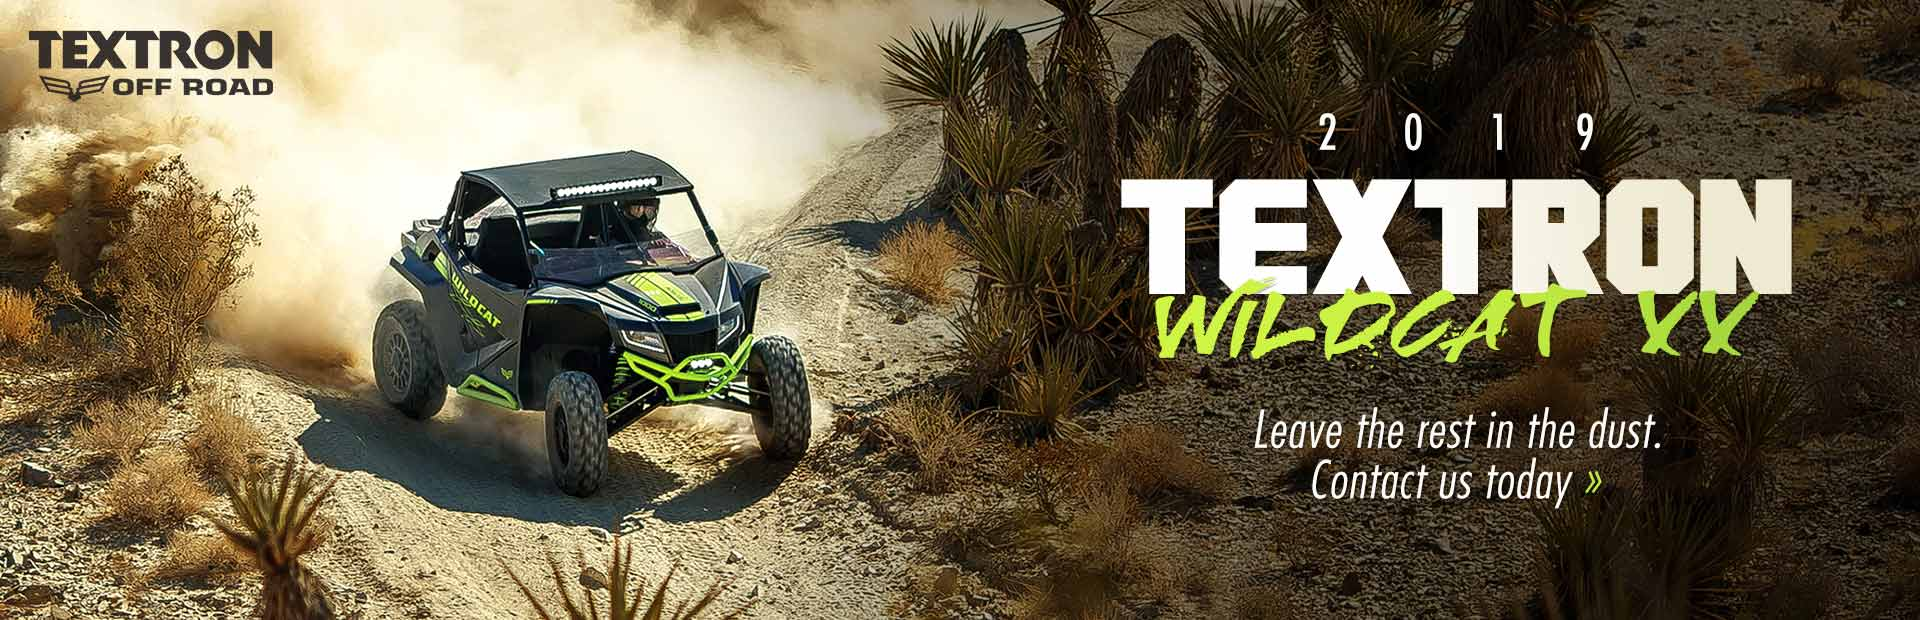 2019 Textron Wildcat XX: Contact us for details.